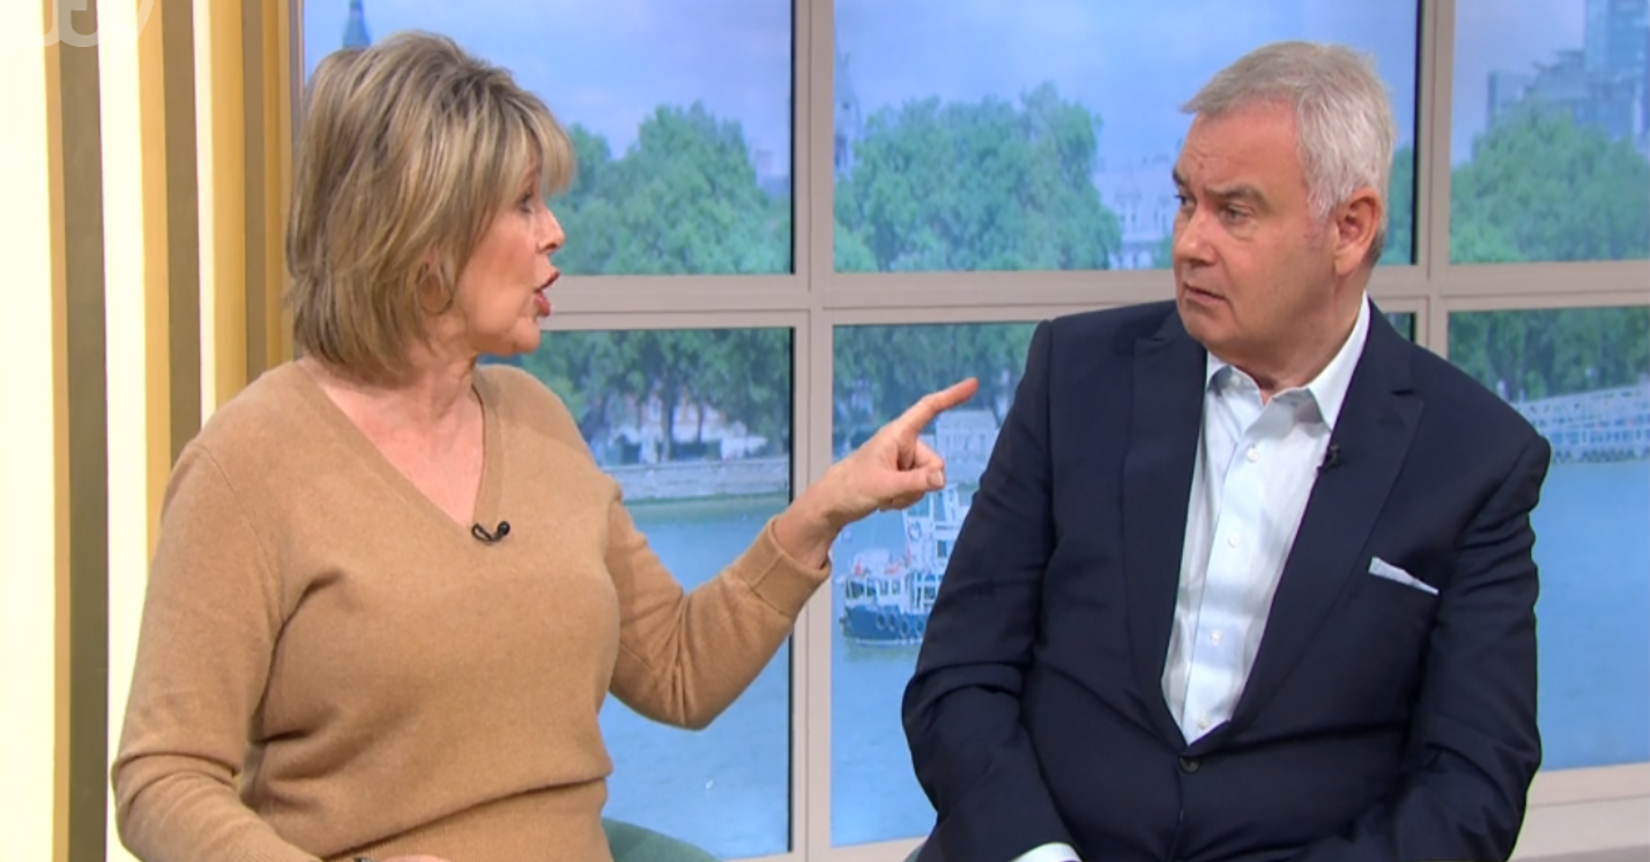 This Morning's Ruth Langsford and Eamonn Holmes argue over his eating habits in lockdown